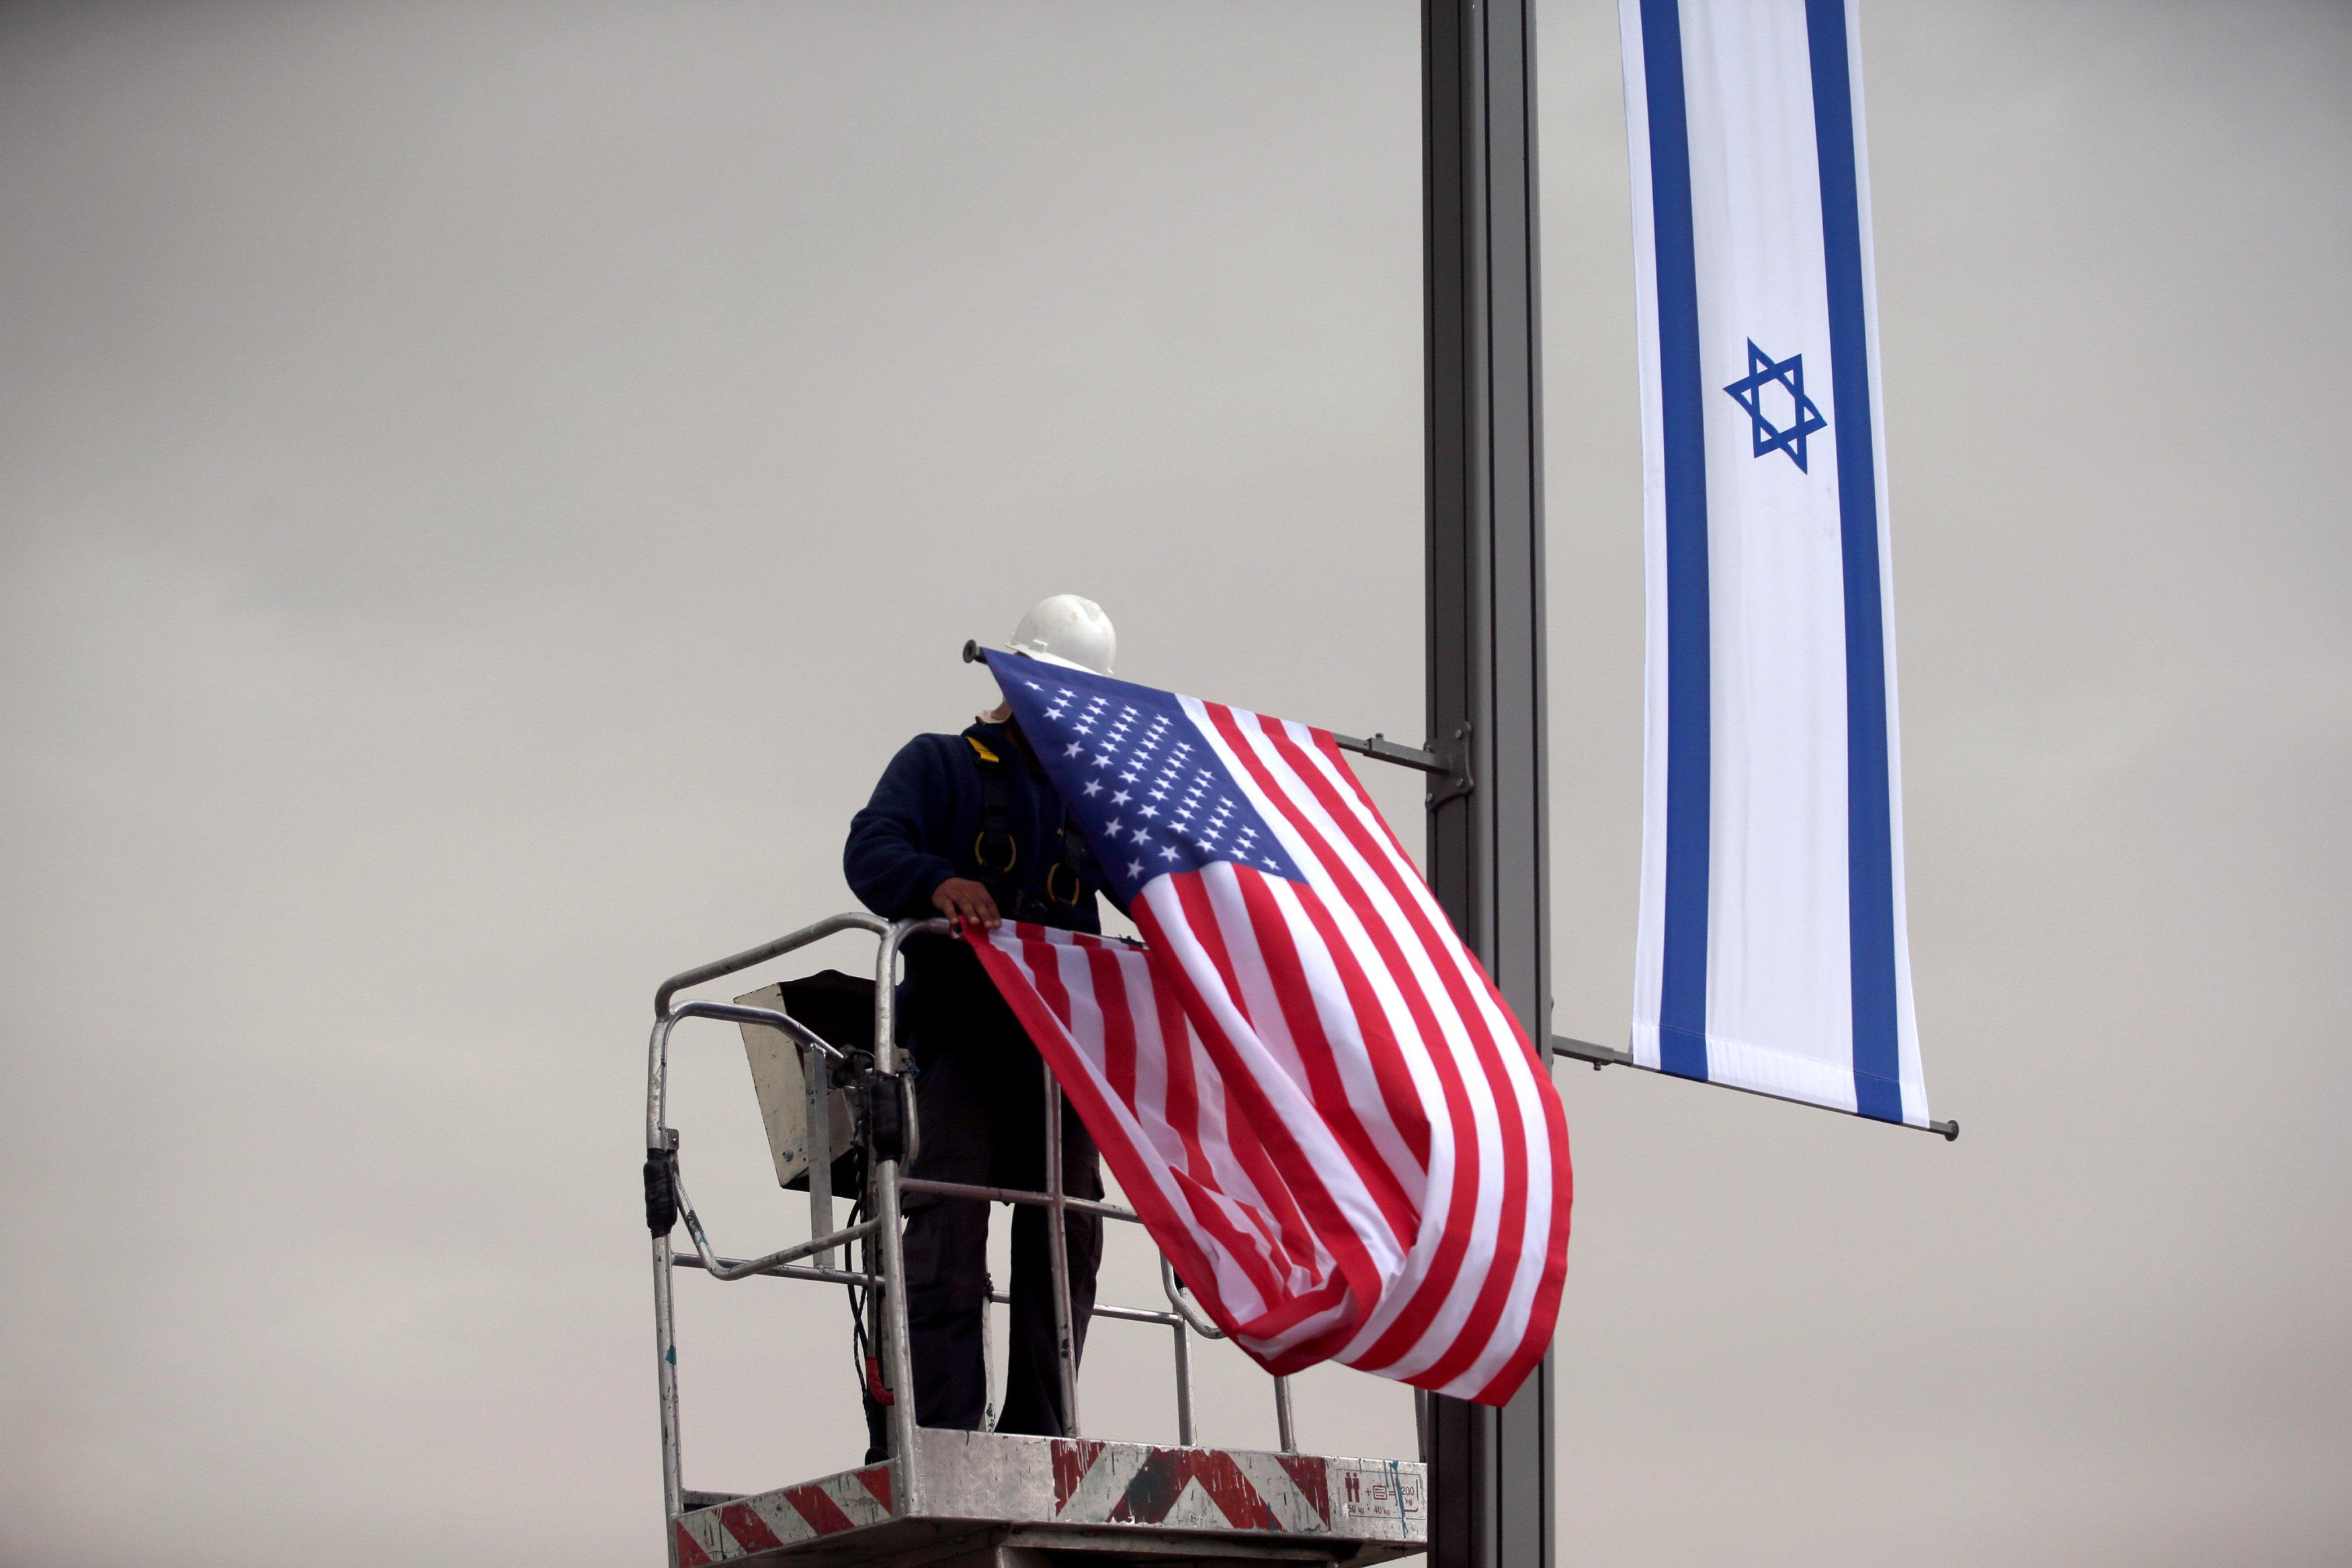 Why is the U.S. moving its embassy to Jerusalem?